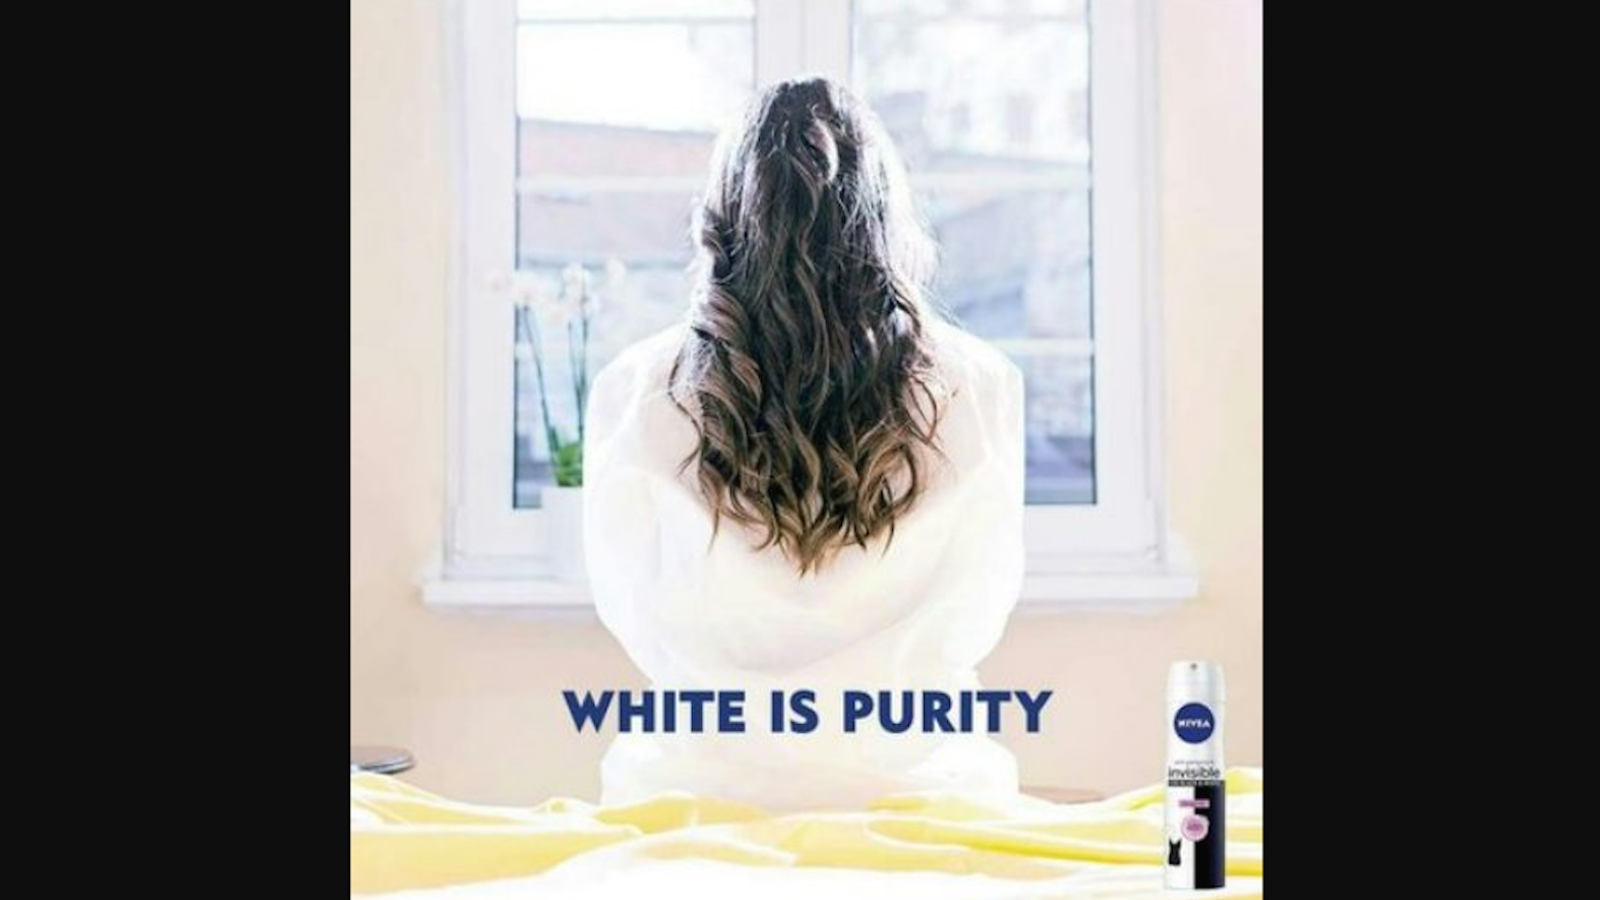 Nivea Pulls 'White Is Purity' Ad, But I'll Never Forget It